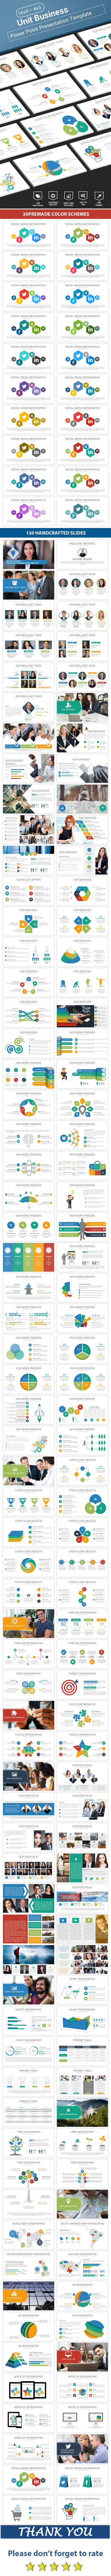 Unit Business PowerPoint Presentation Template - PowerPoint Templates Presentation Templates